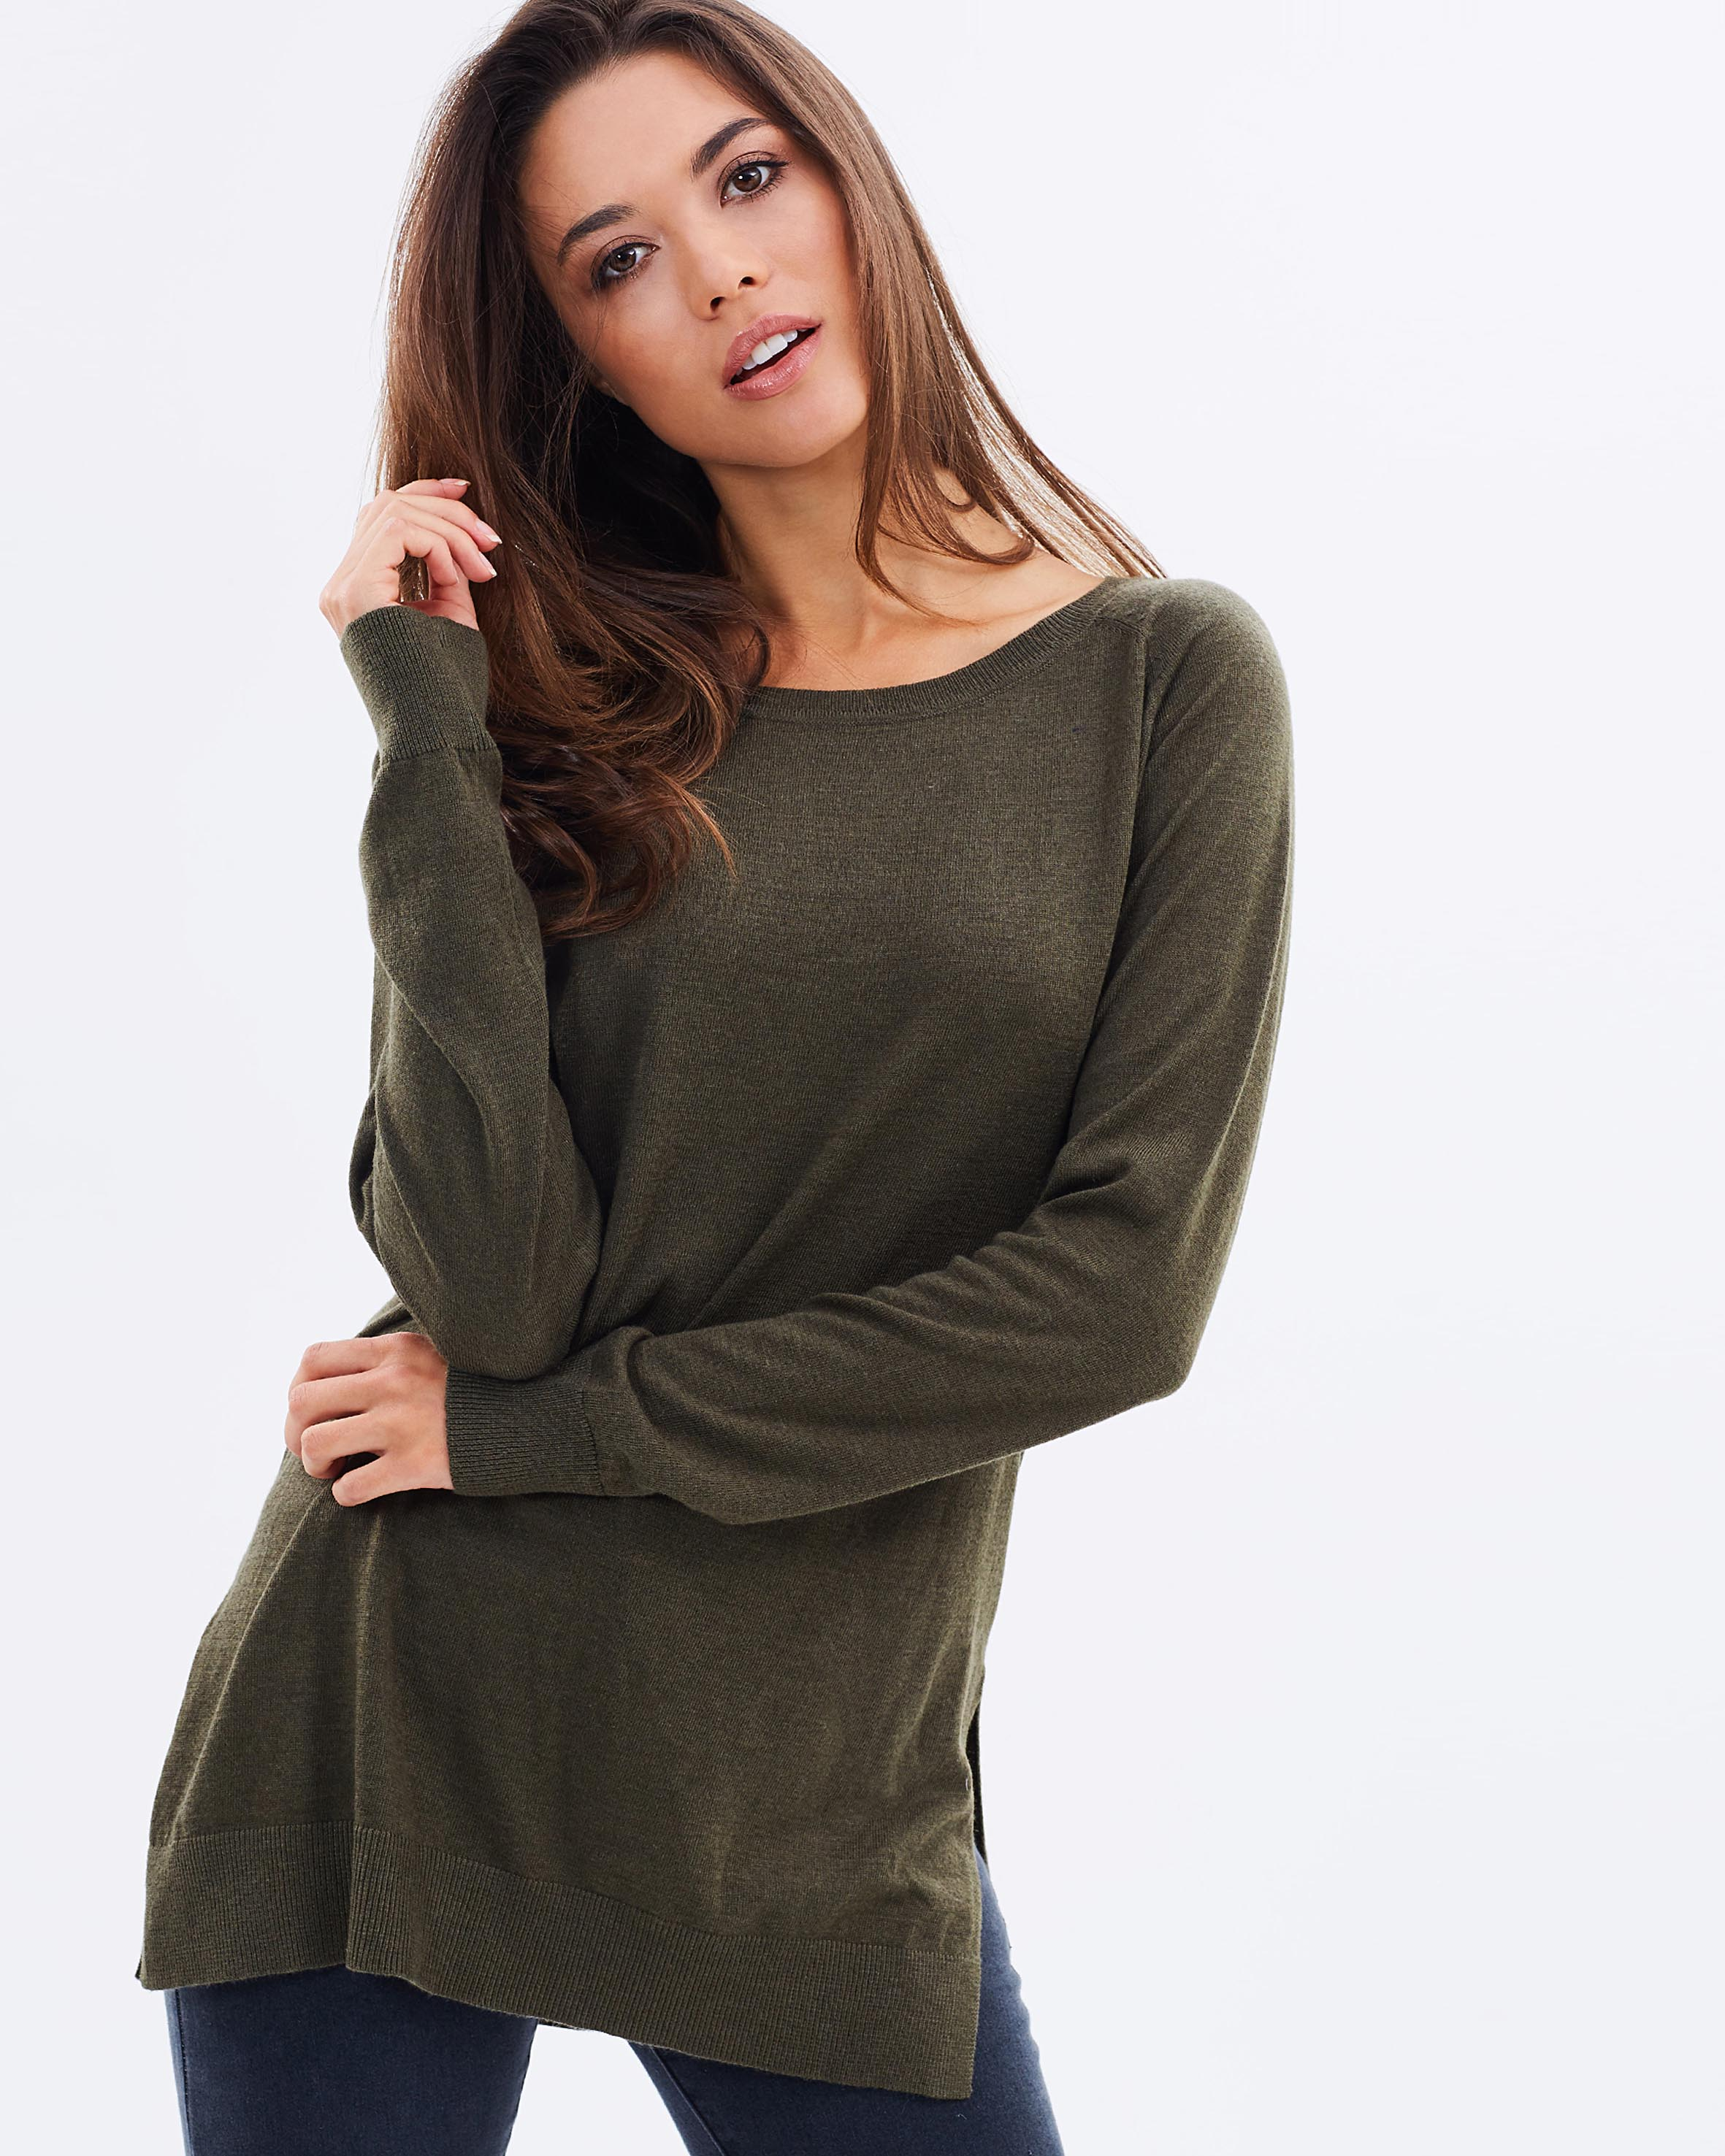 Atmos & Here Caitlyn knit top $49.95